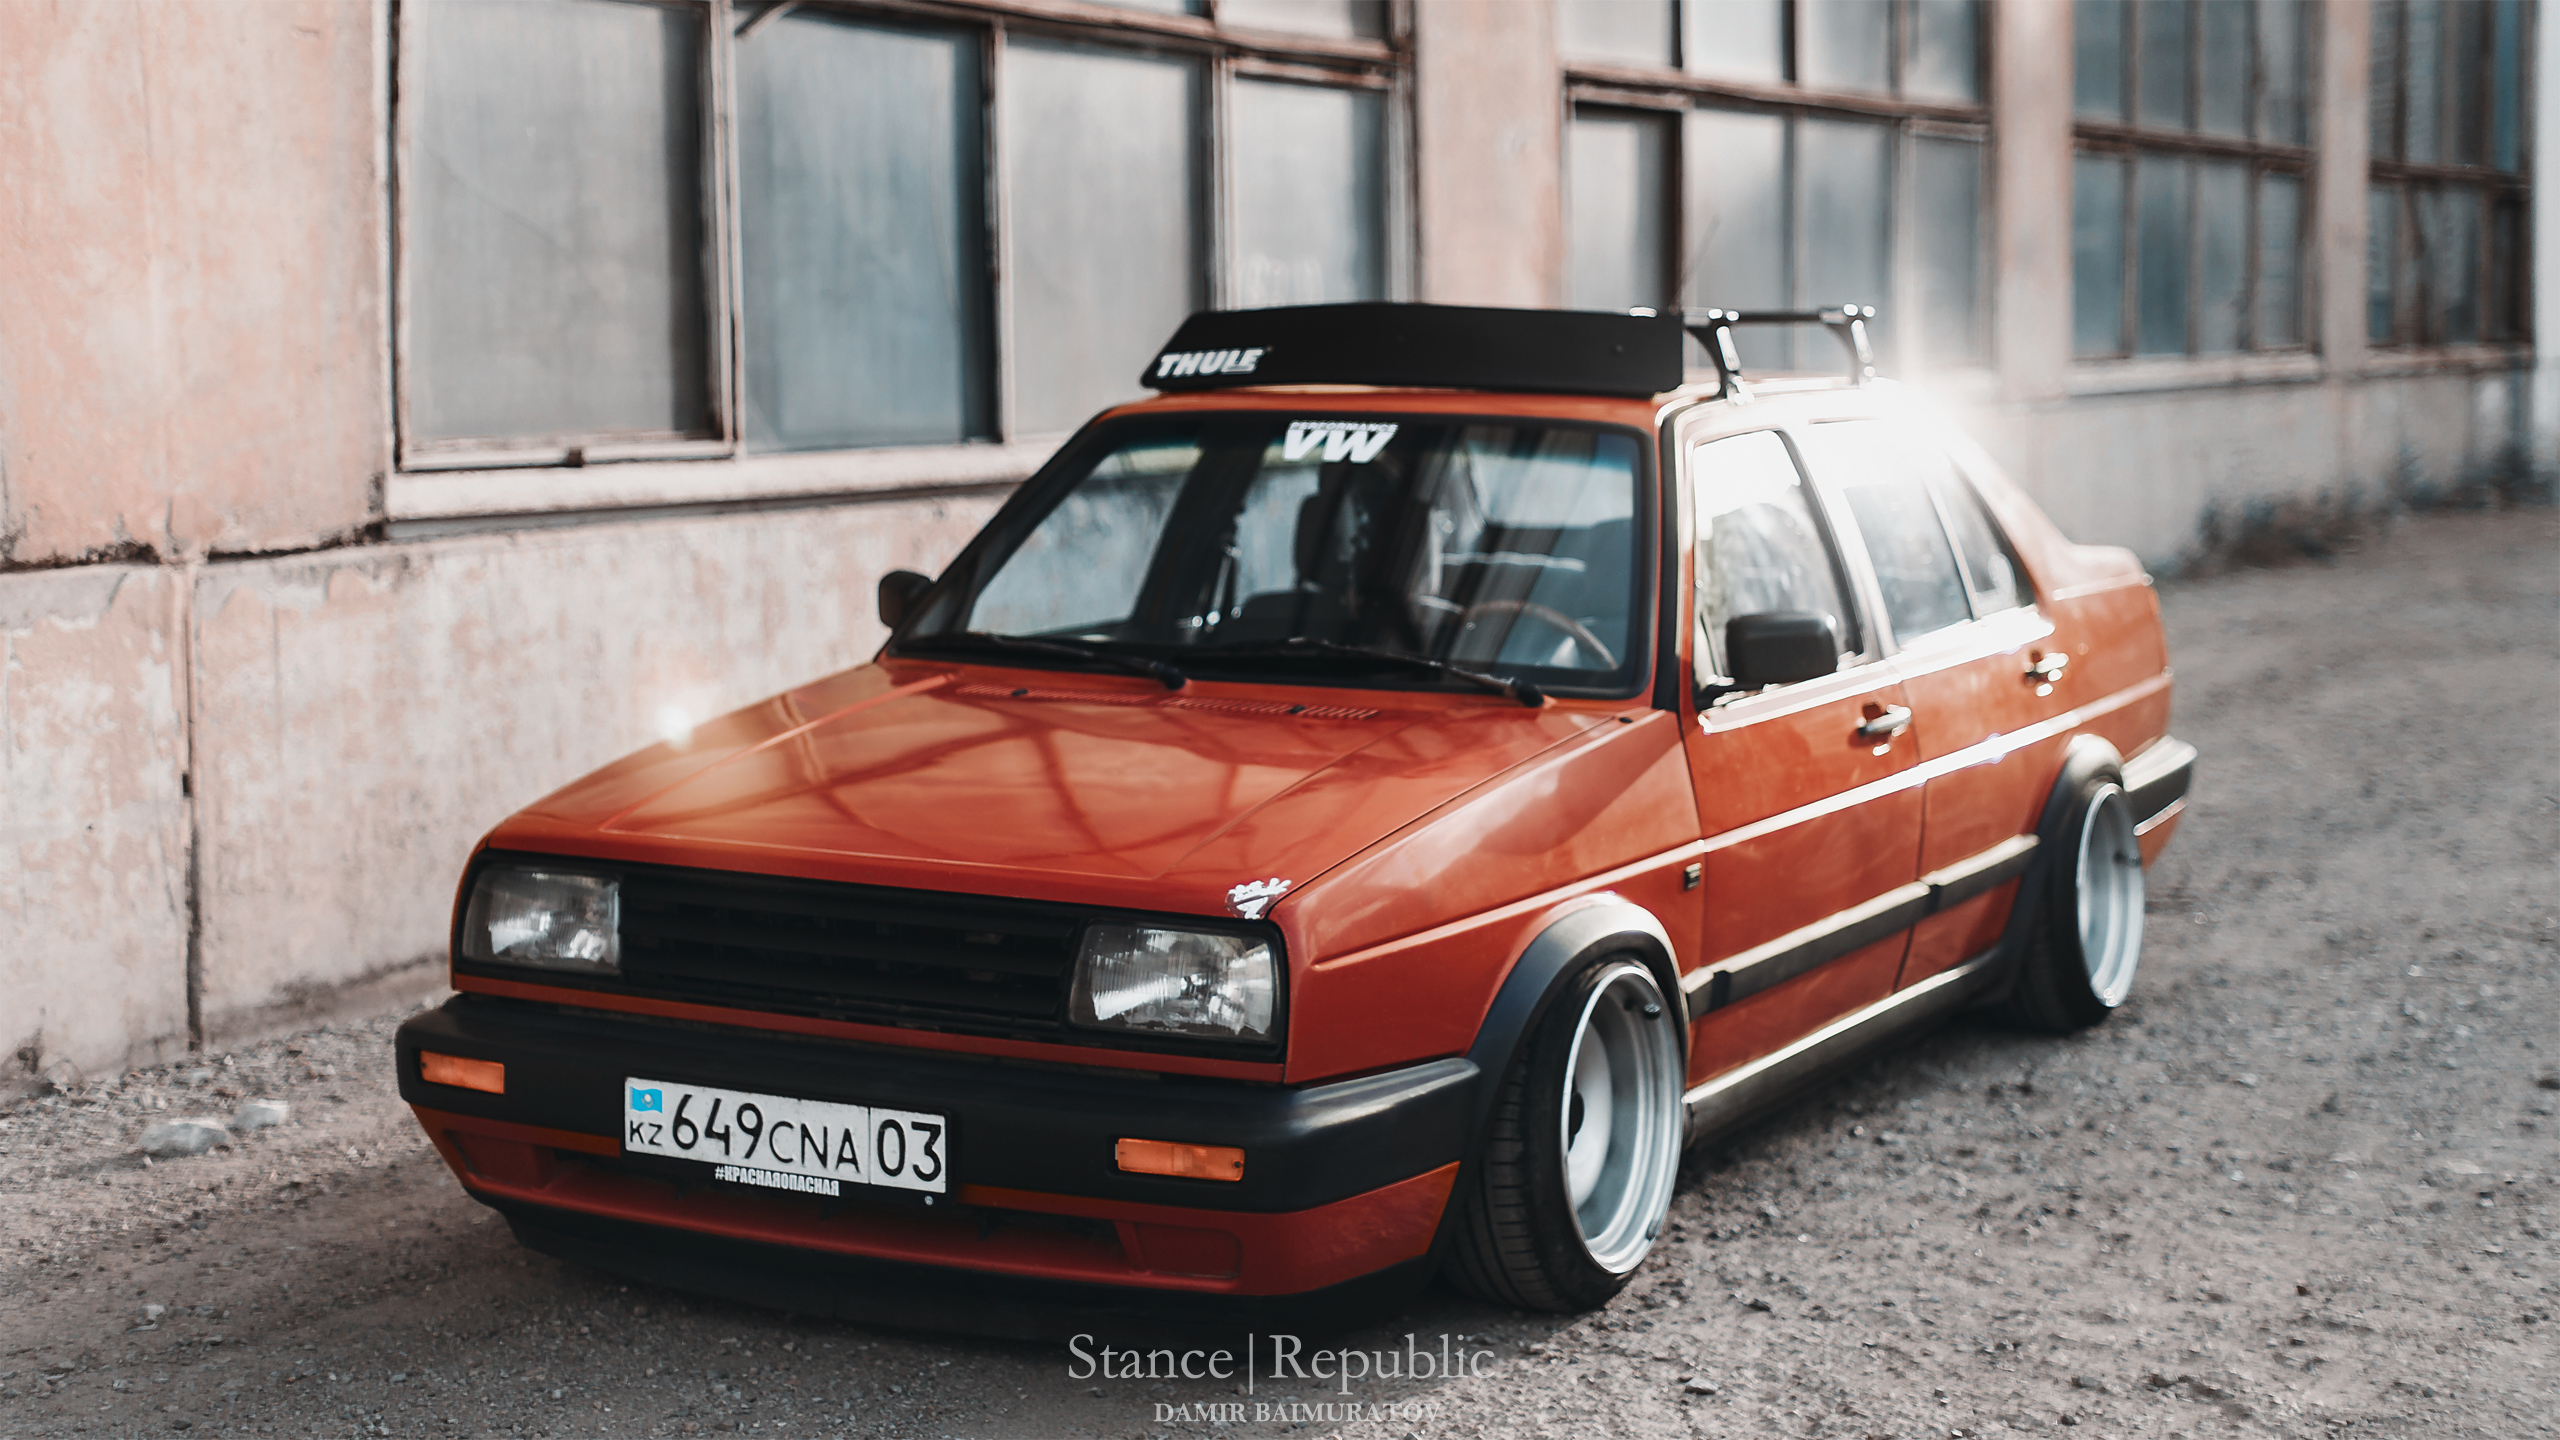 wallpaper jetta mk2 1 My CMS 2560x1440